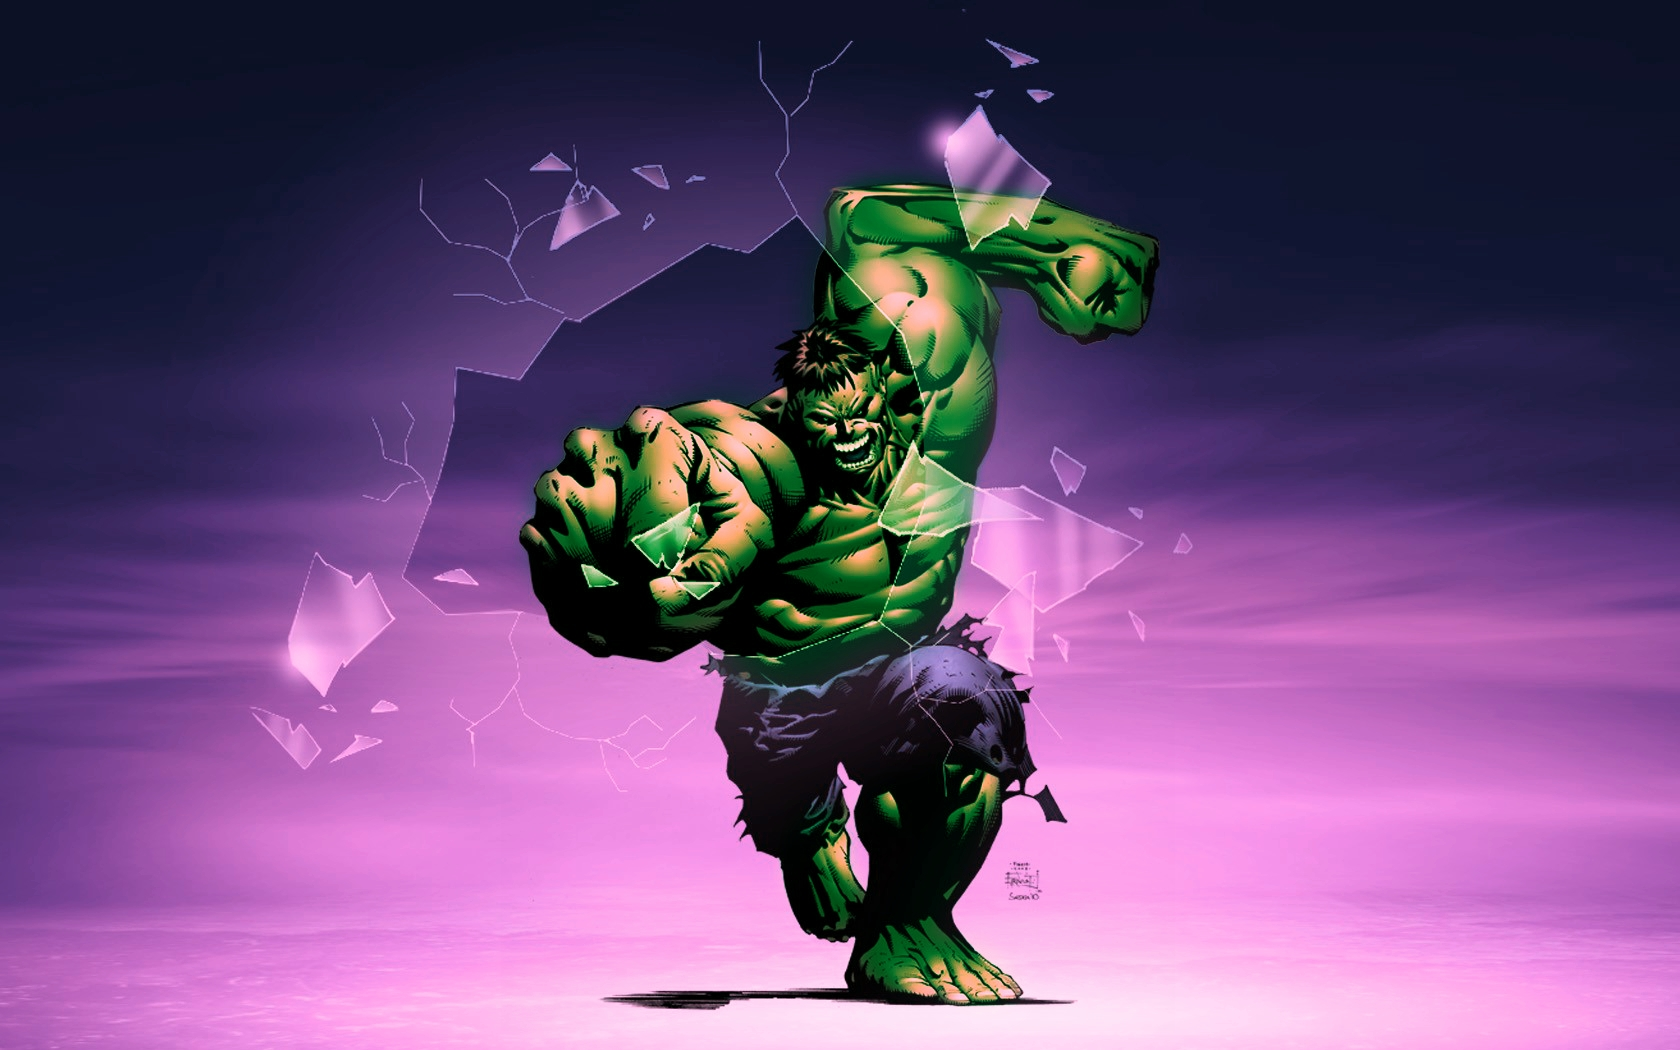 63527488 The Incredible Hulk Full HD Quality Wallpapers - 303x437 px